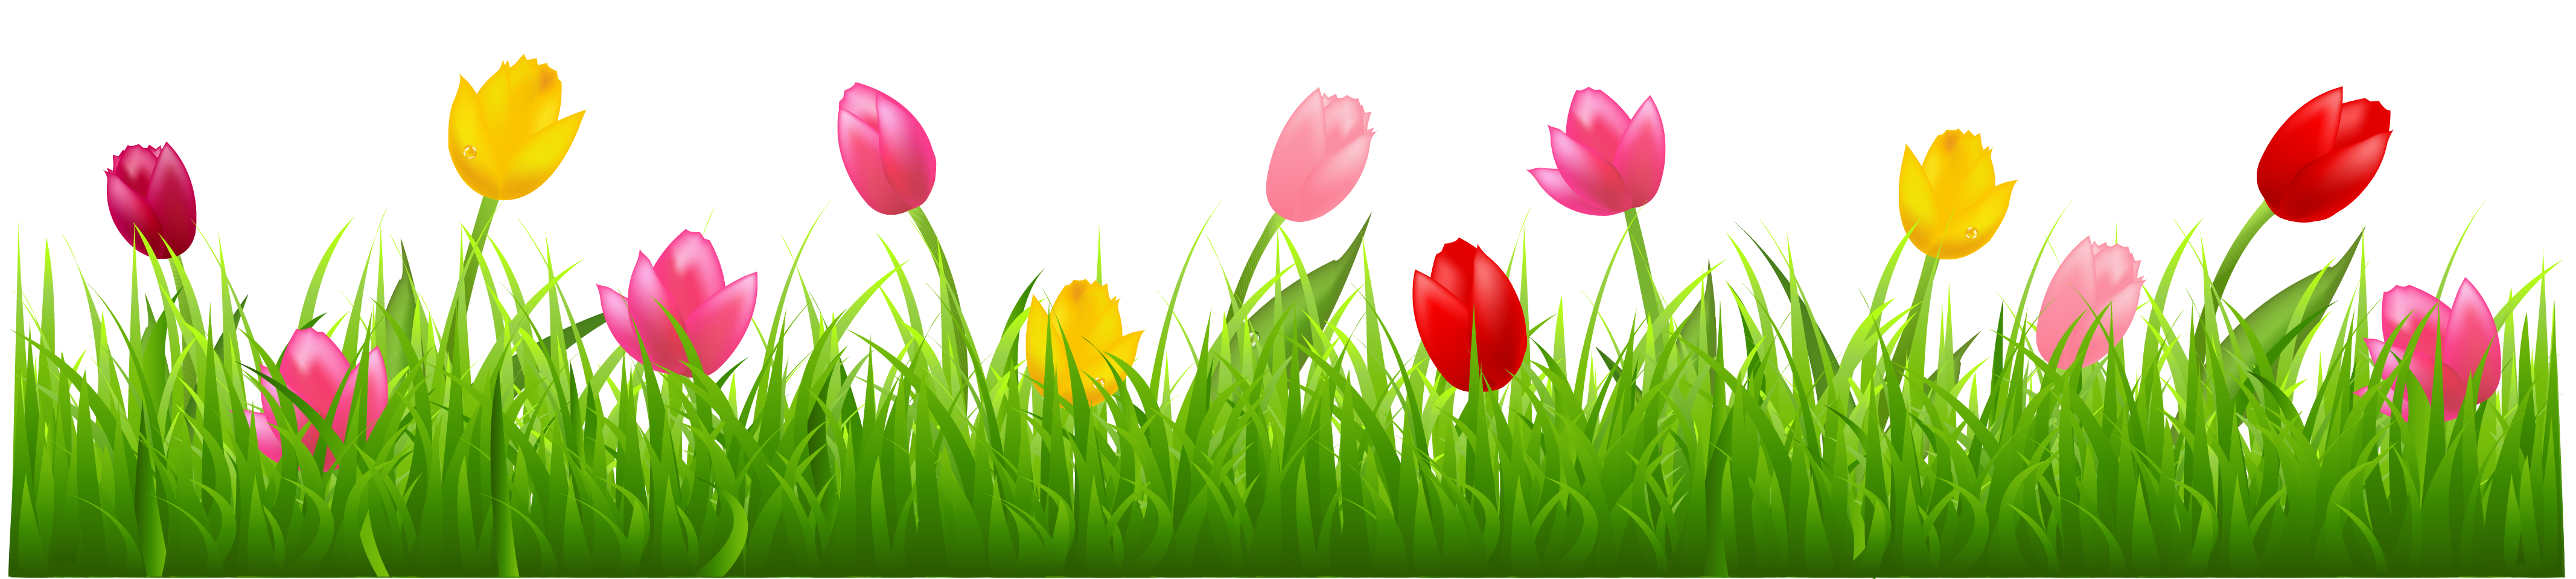 Grass with Colorful Tulips PNG Clipart   Spring Borders ...